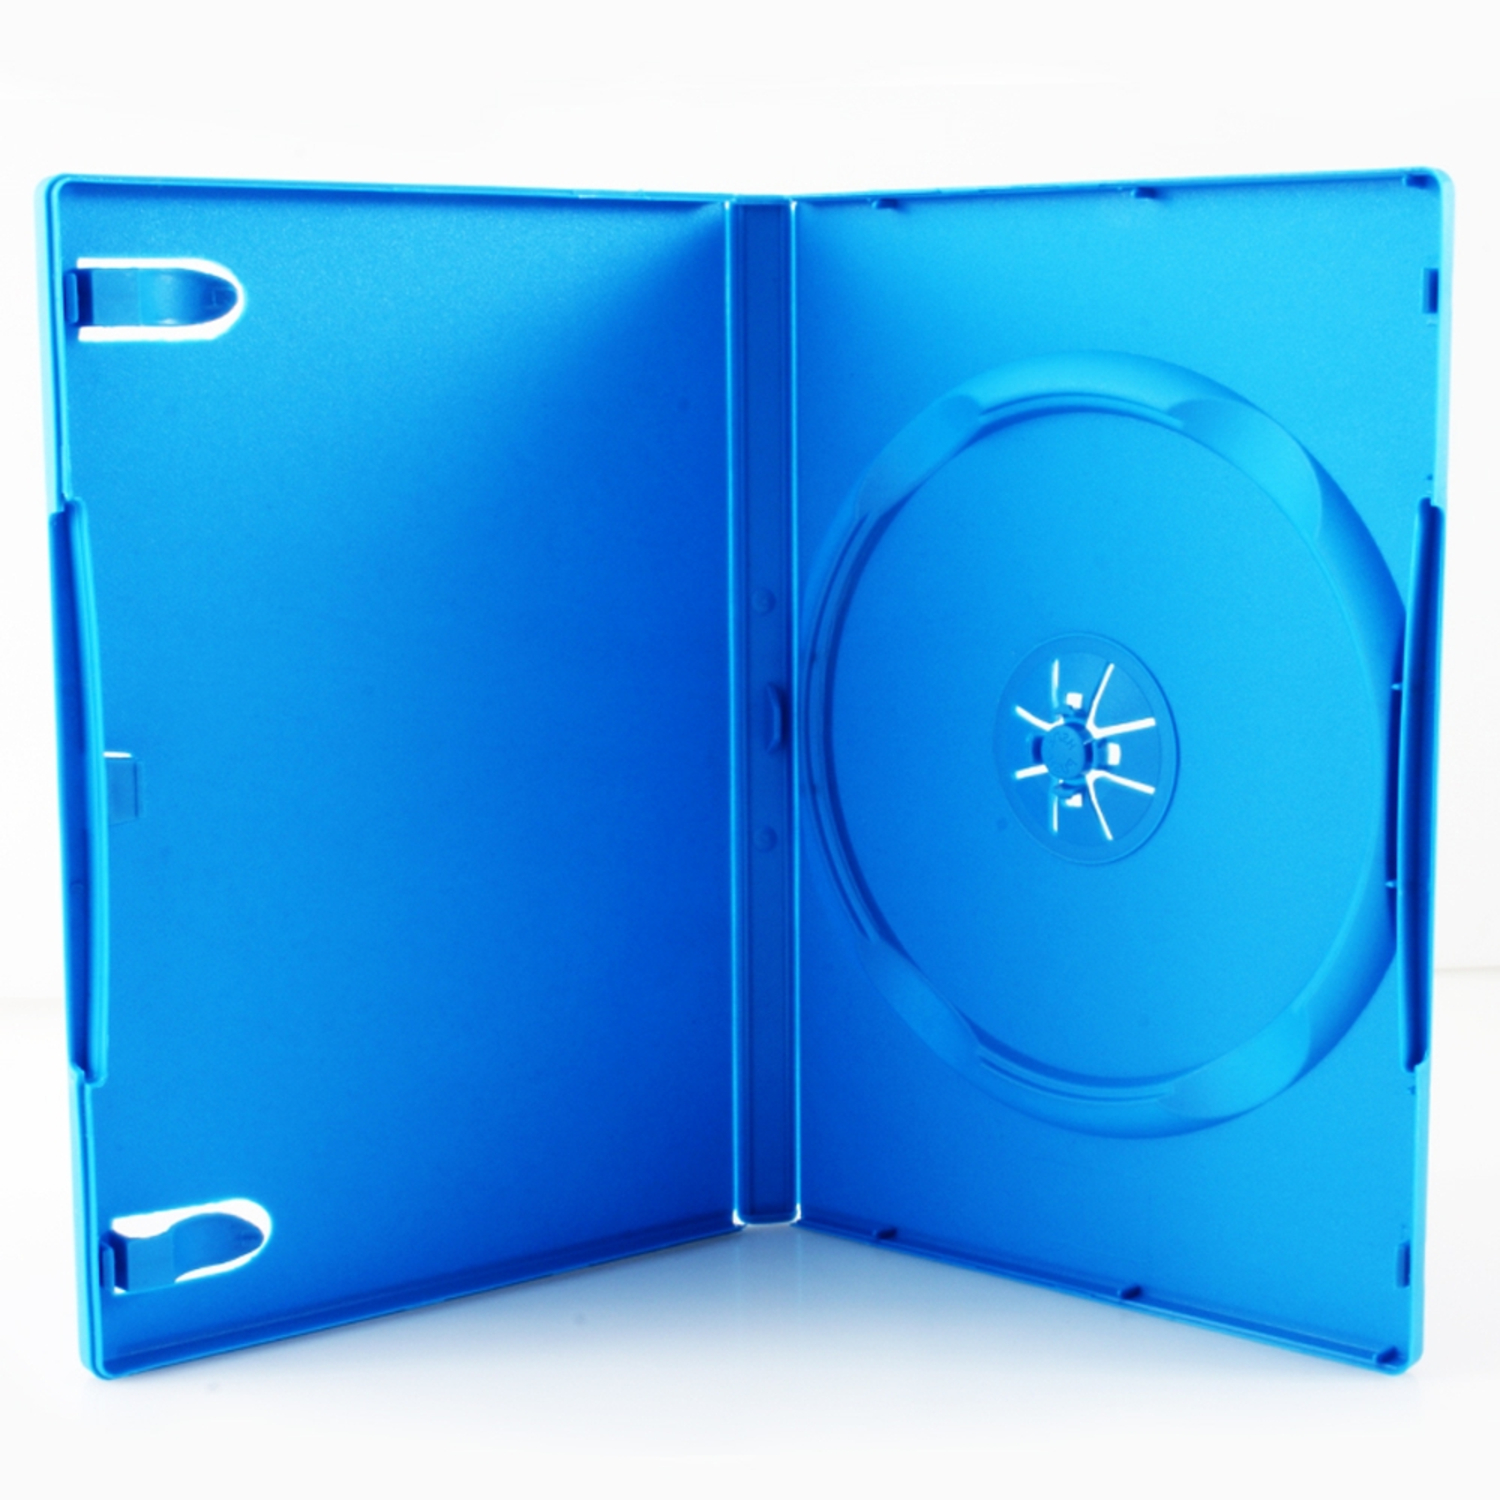 Third Party Media Package - 14mm Single DVD Case For Nintendo Wii U, Baby Blue